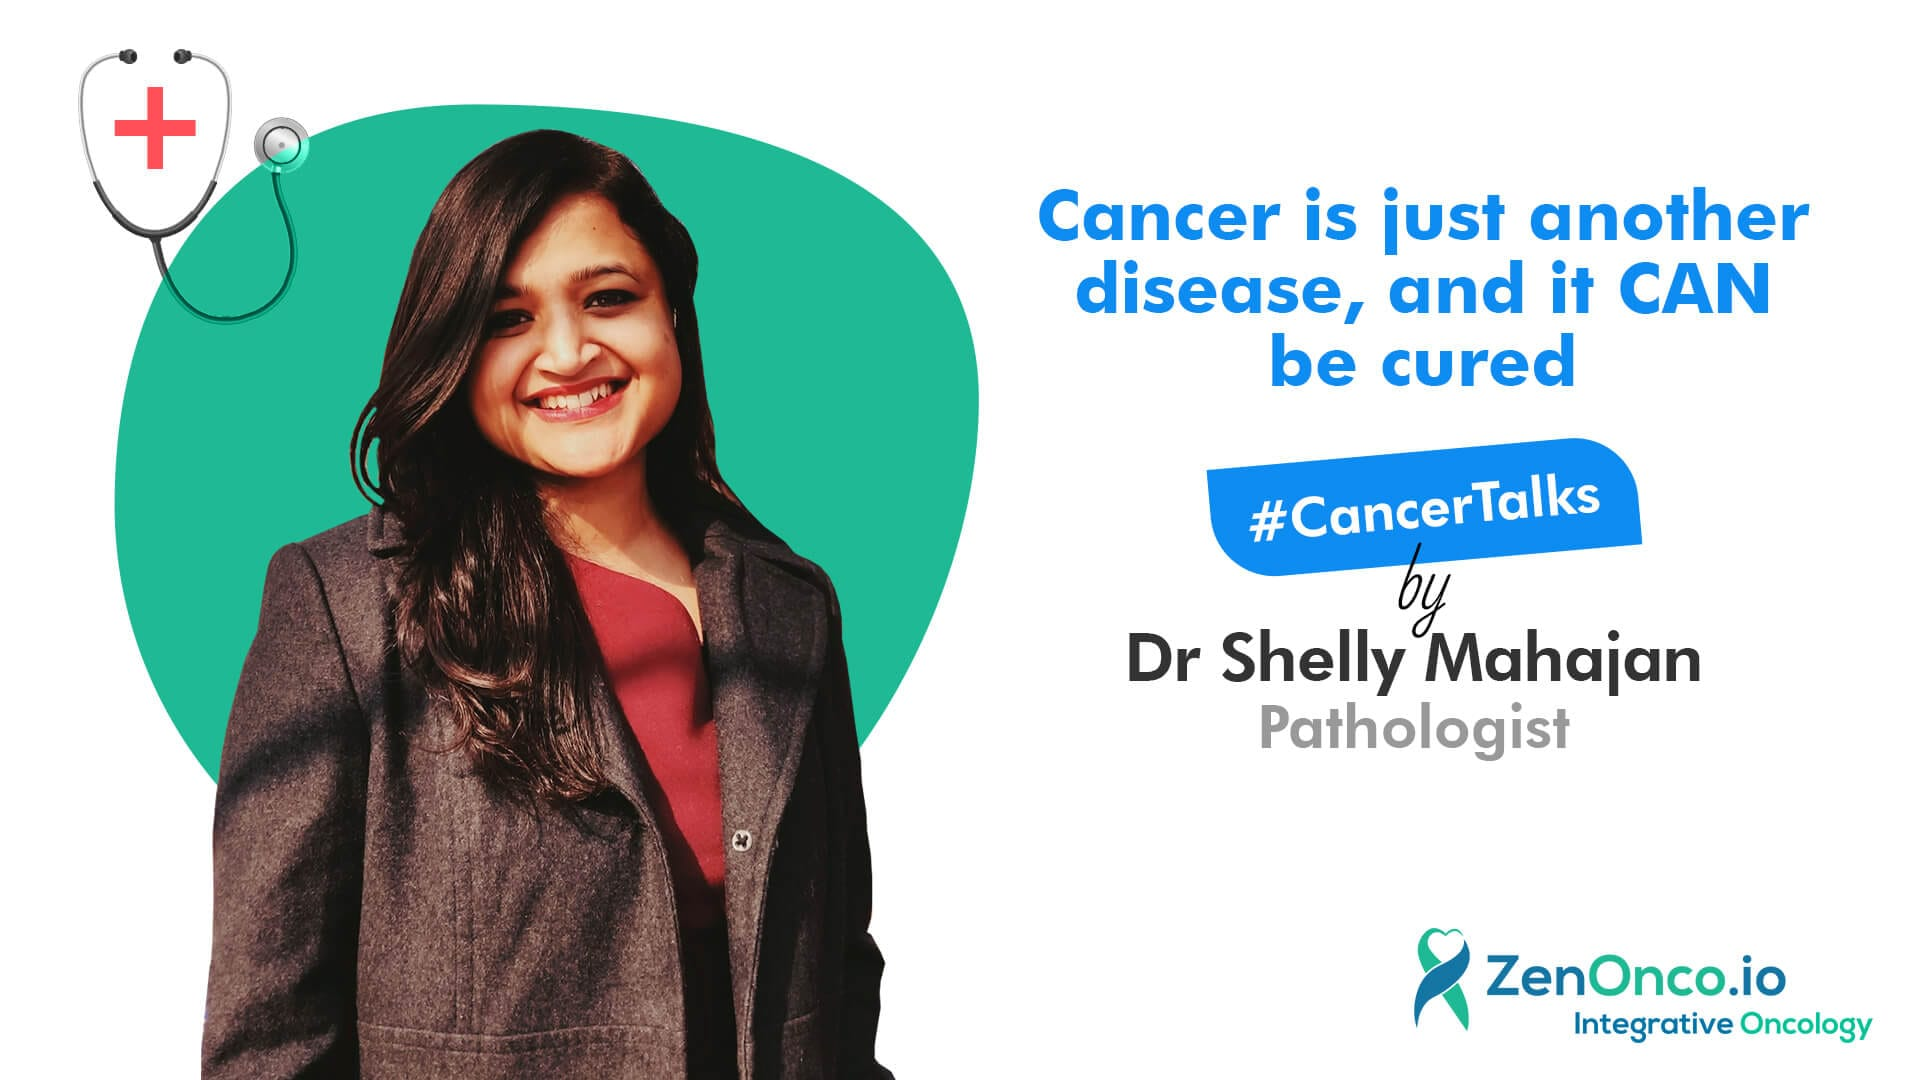 Interview with Dr Shelly Mahajan: Role of Pathologists and Hereditary Cancer